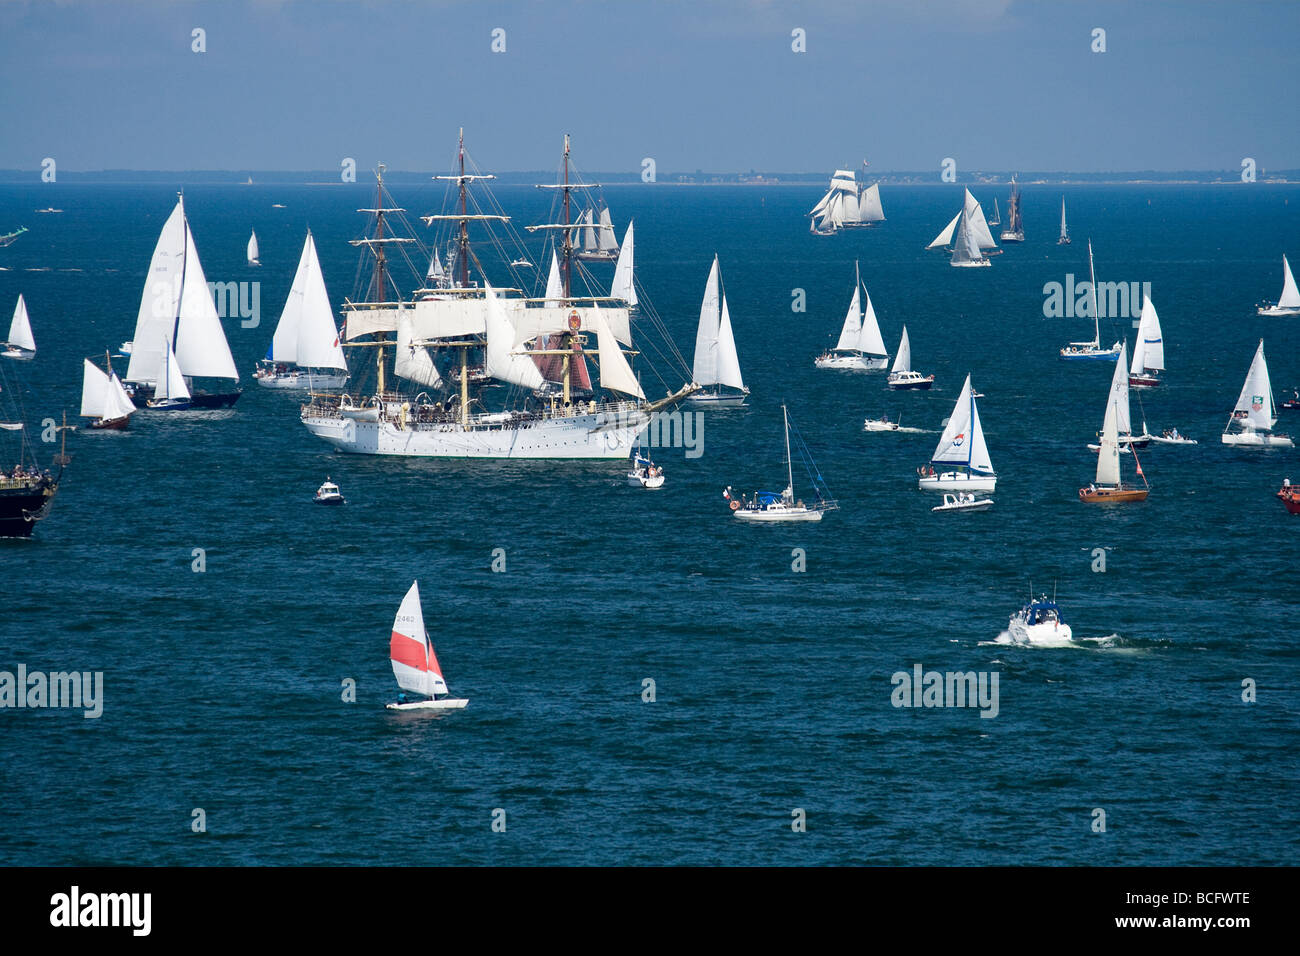 Norwegian 'Class A' type ship Sorlandet during the beginning of Tall Ships Races 2009 in Gdynia, Poland. - Stock Image